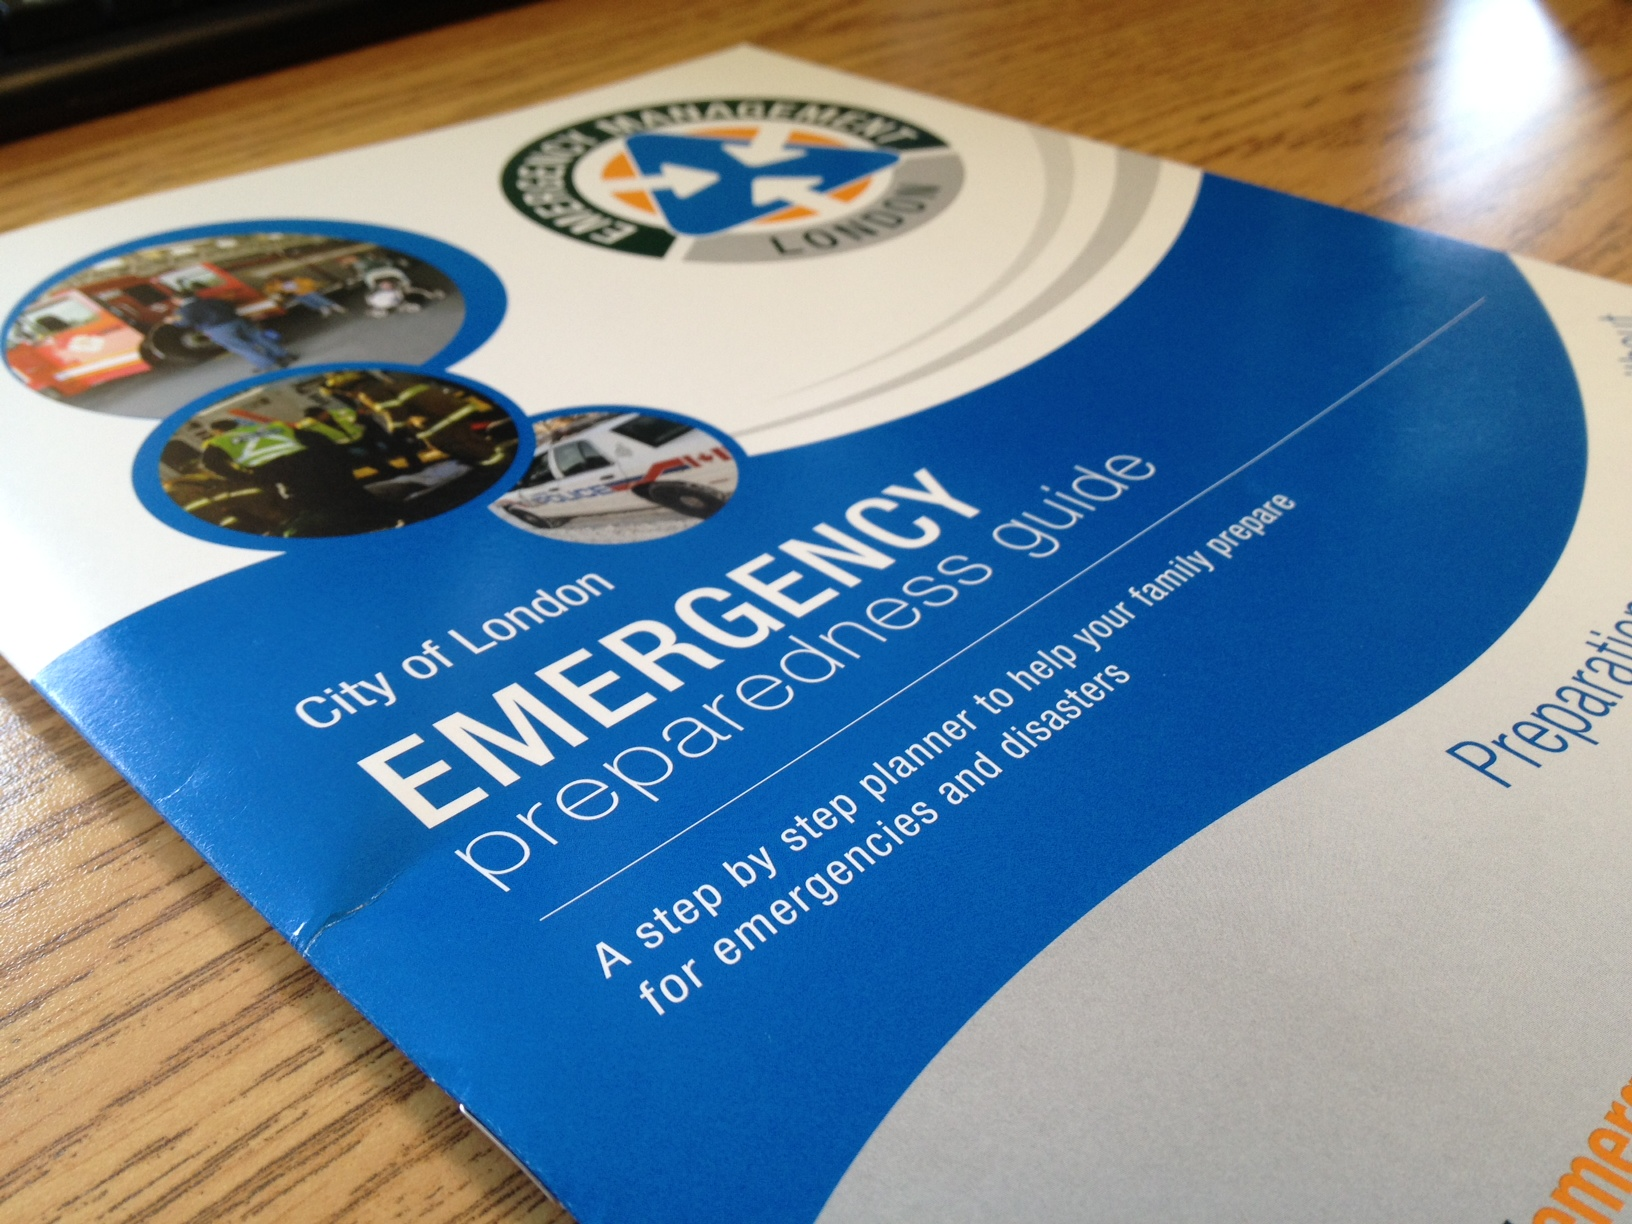 The City of London's Emergency Preparedness guide.